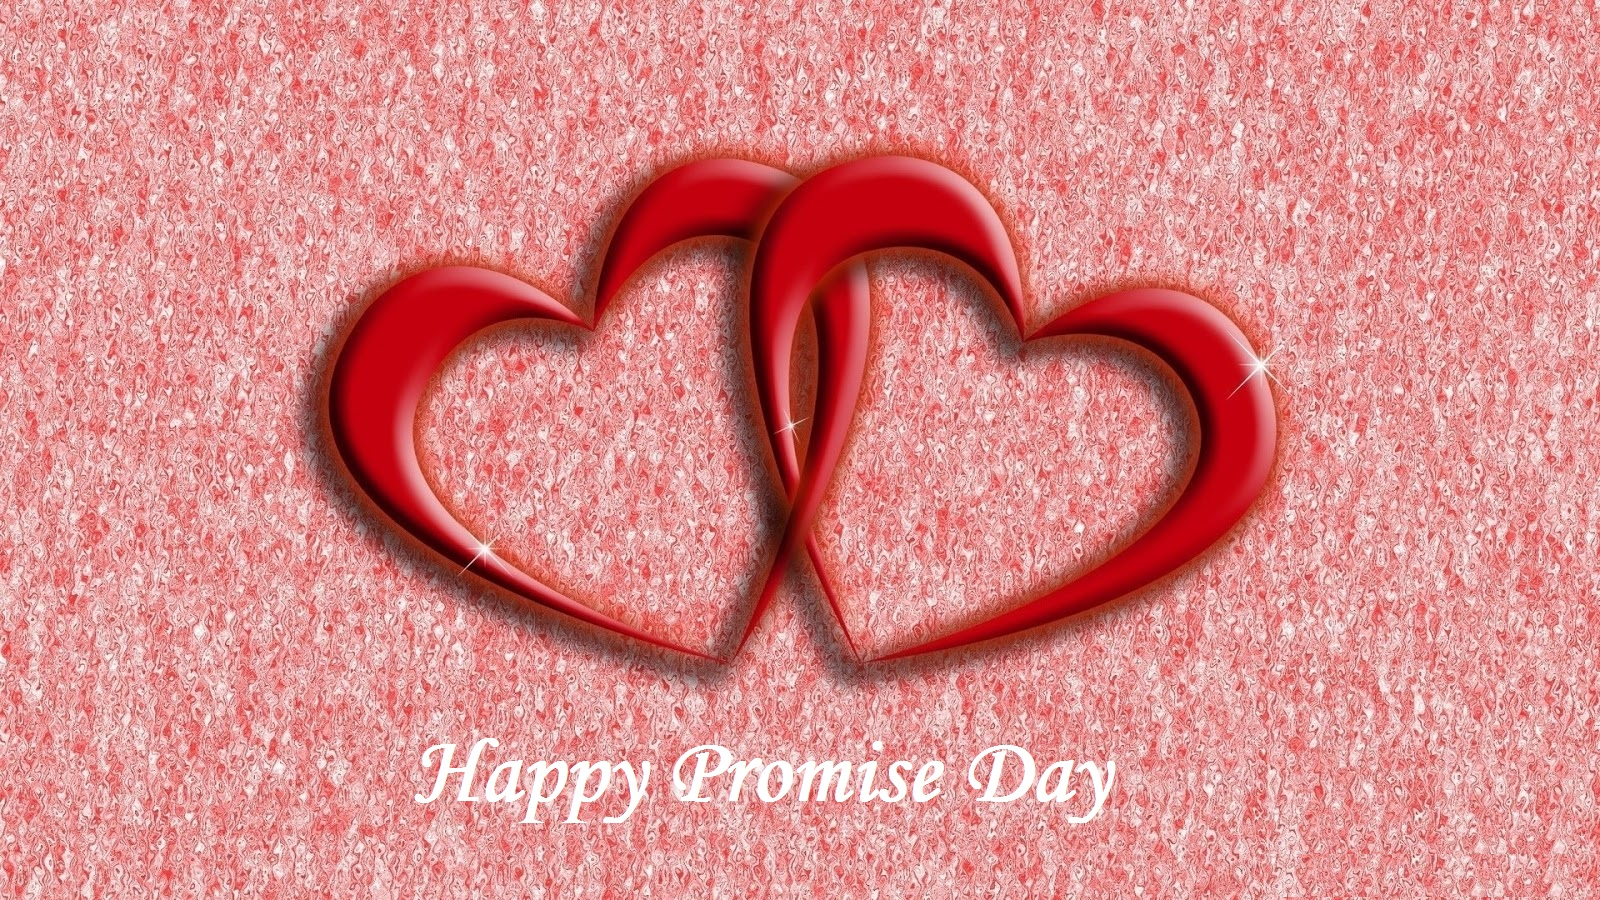 happy promise day hd images